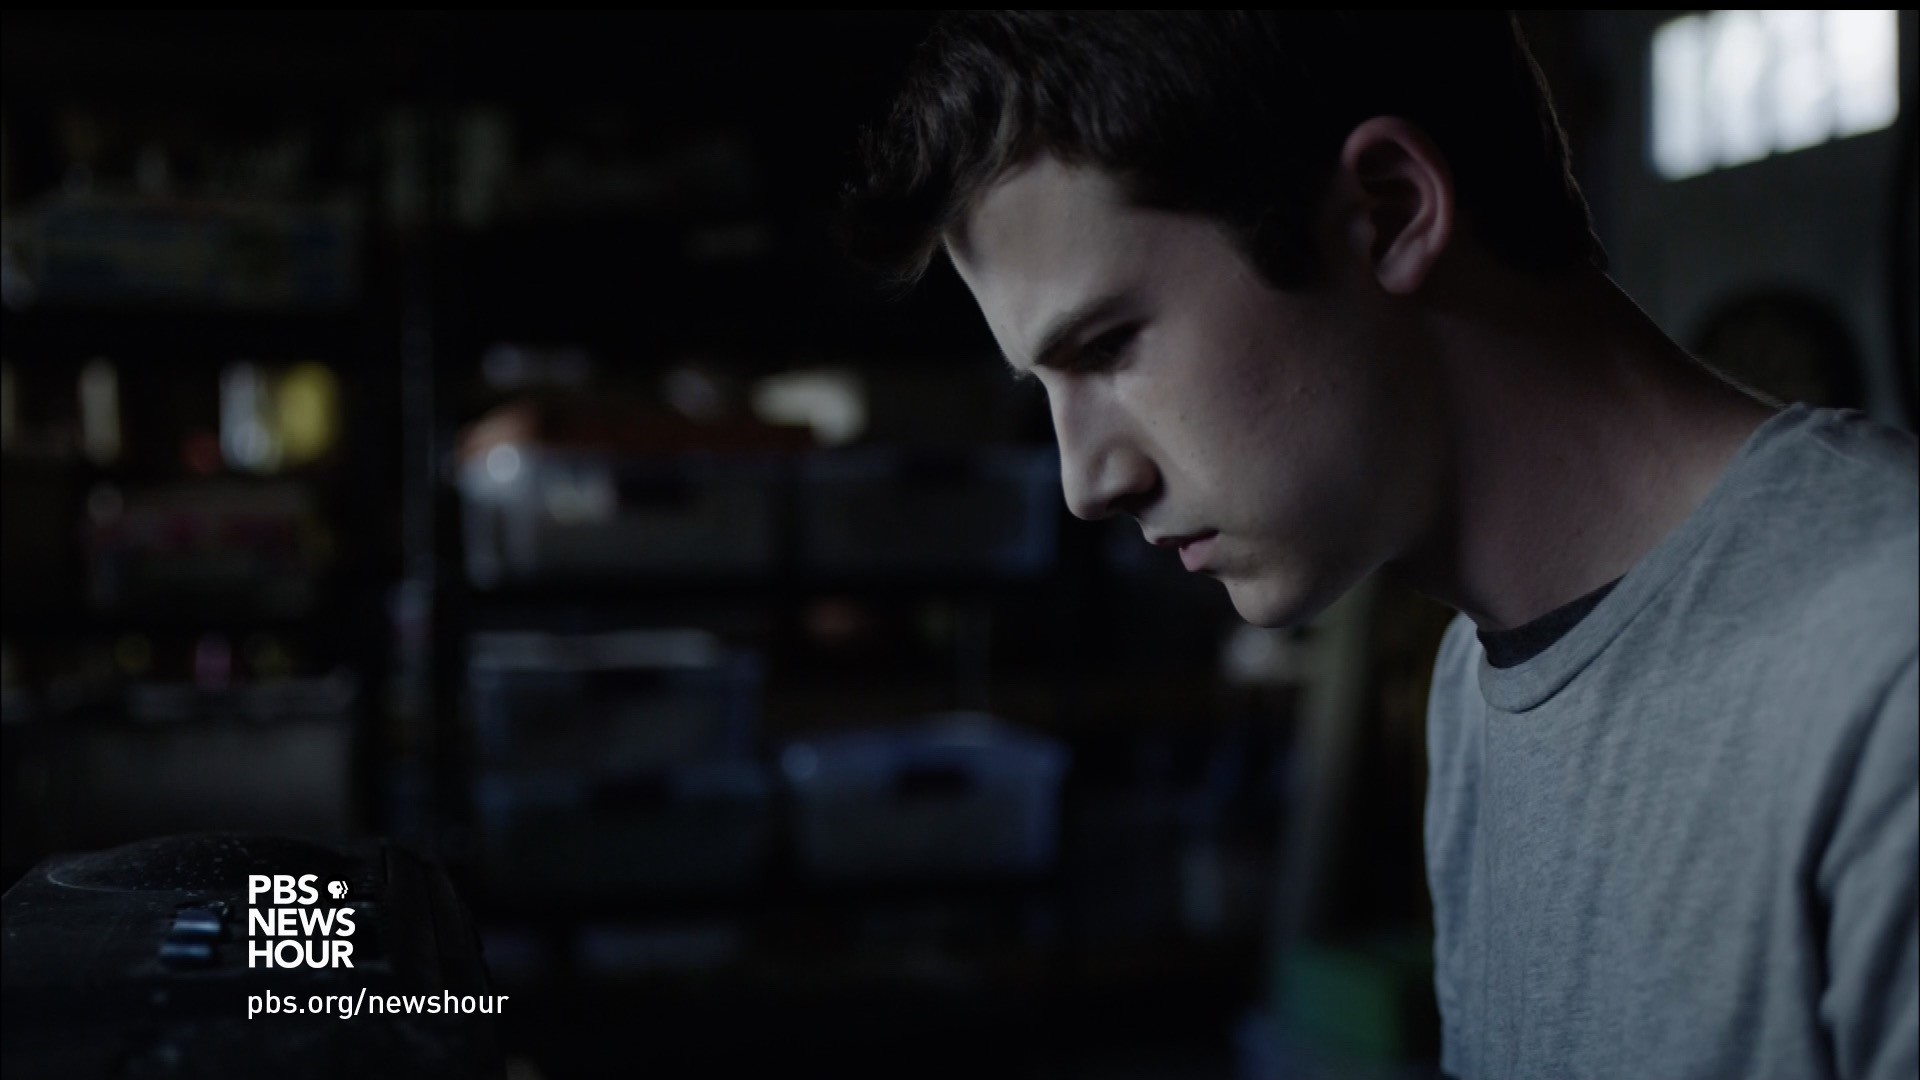 1920x1080 '13 Reasons Why' is provocative and devastating. Is it also dangerous? |  PBS NewsHour